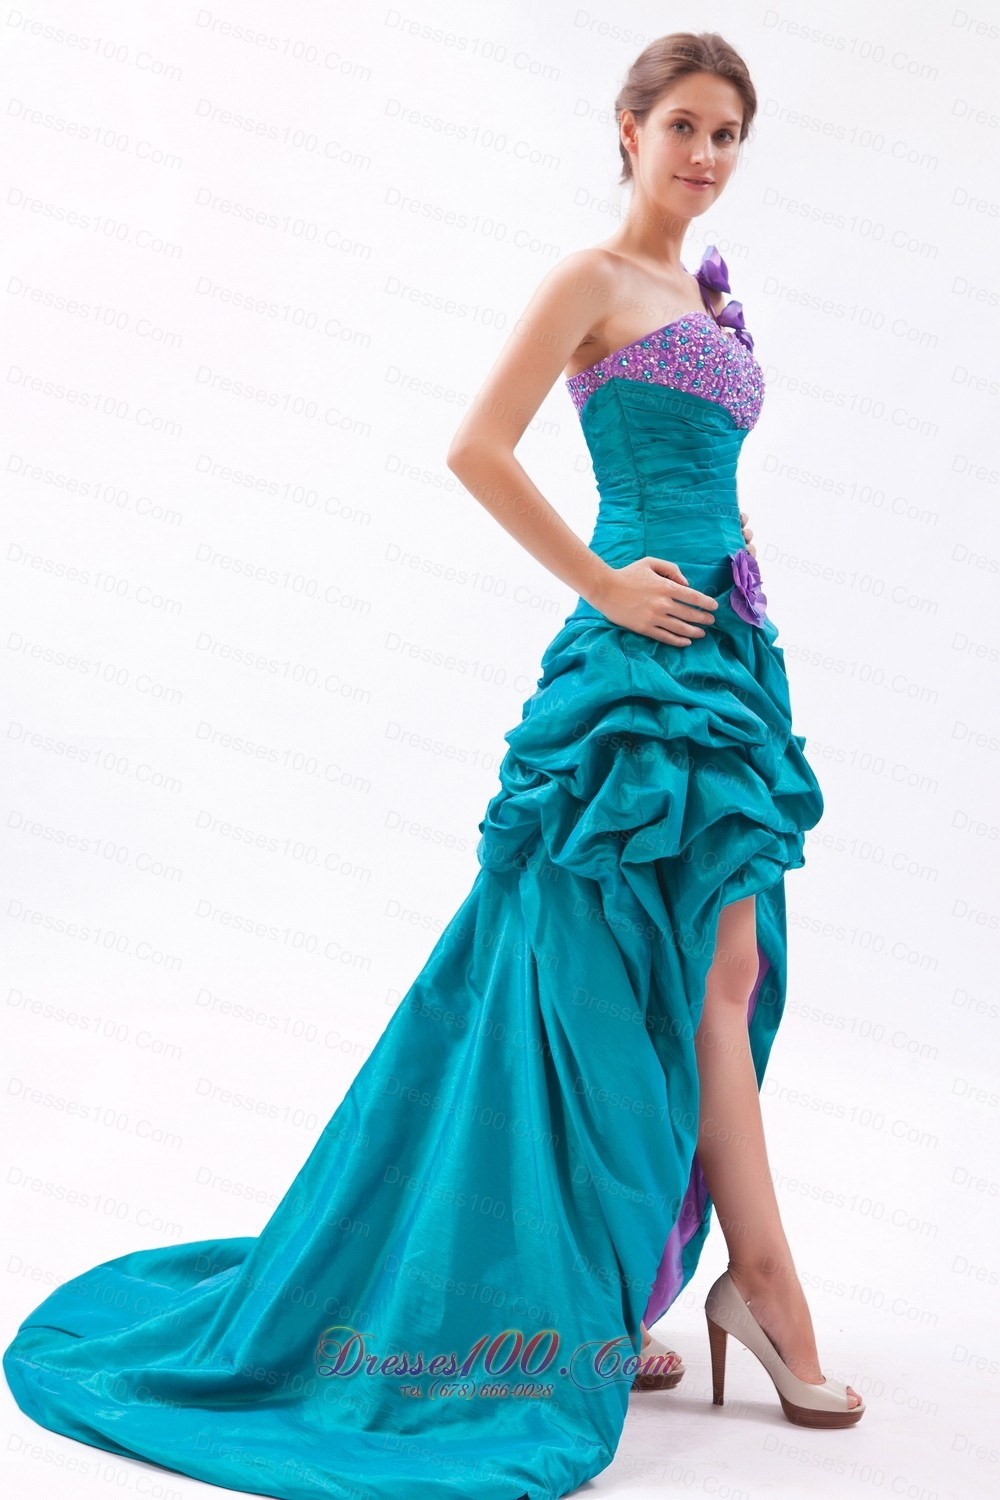 Teal and Lavender One Shoulder High-low Beading Prom Dress ...